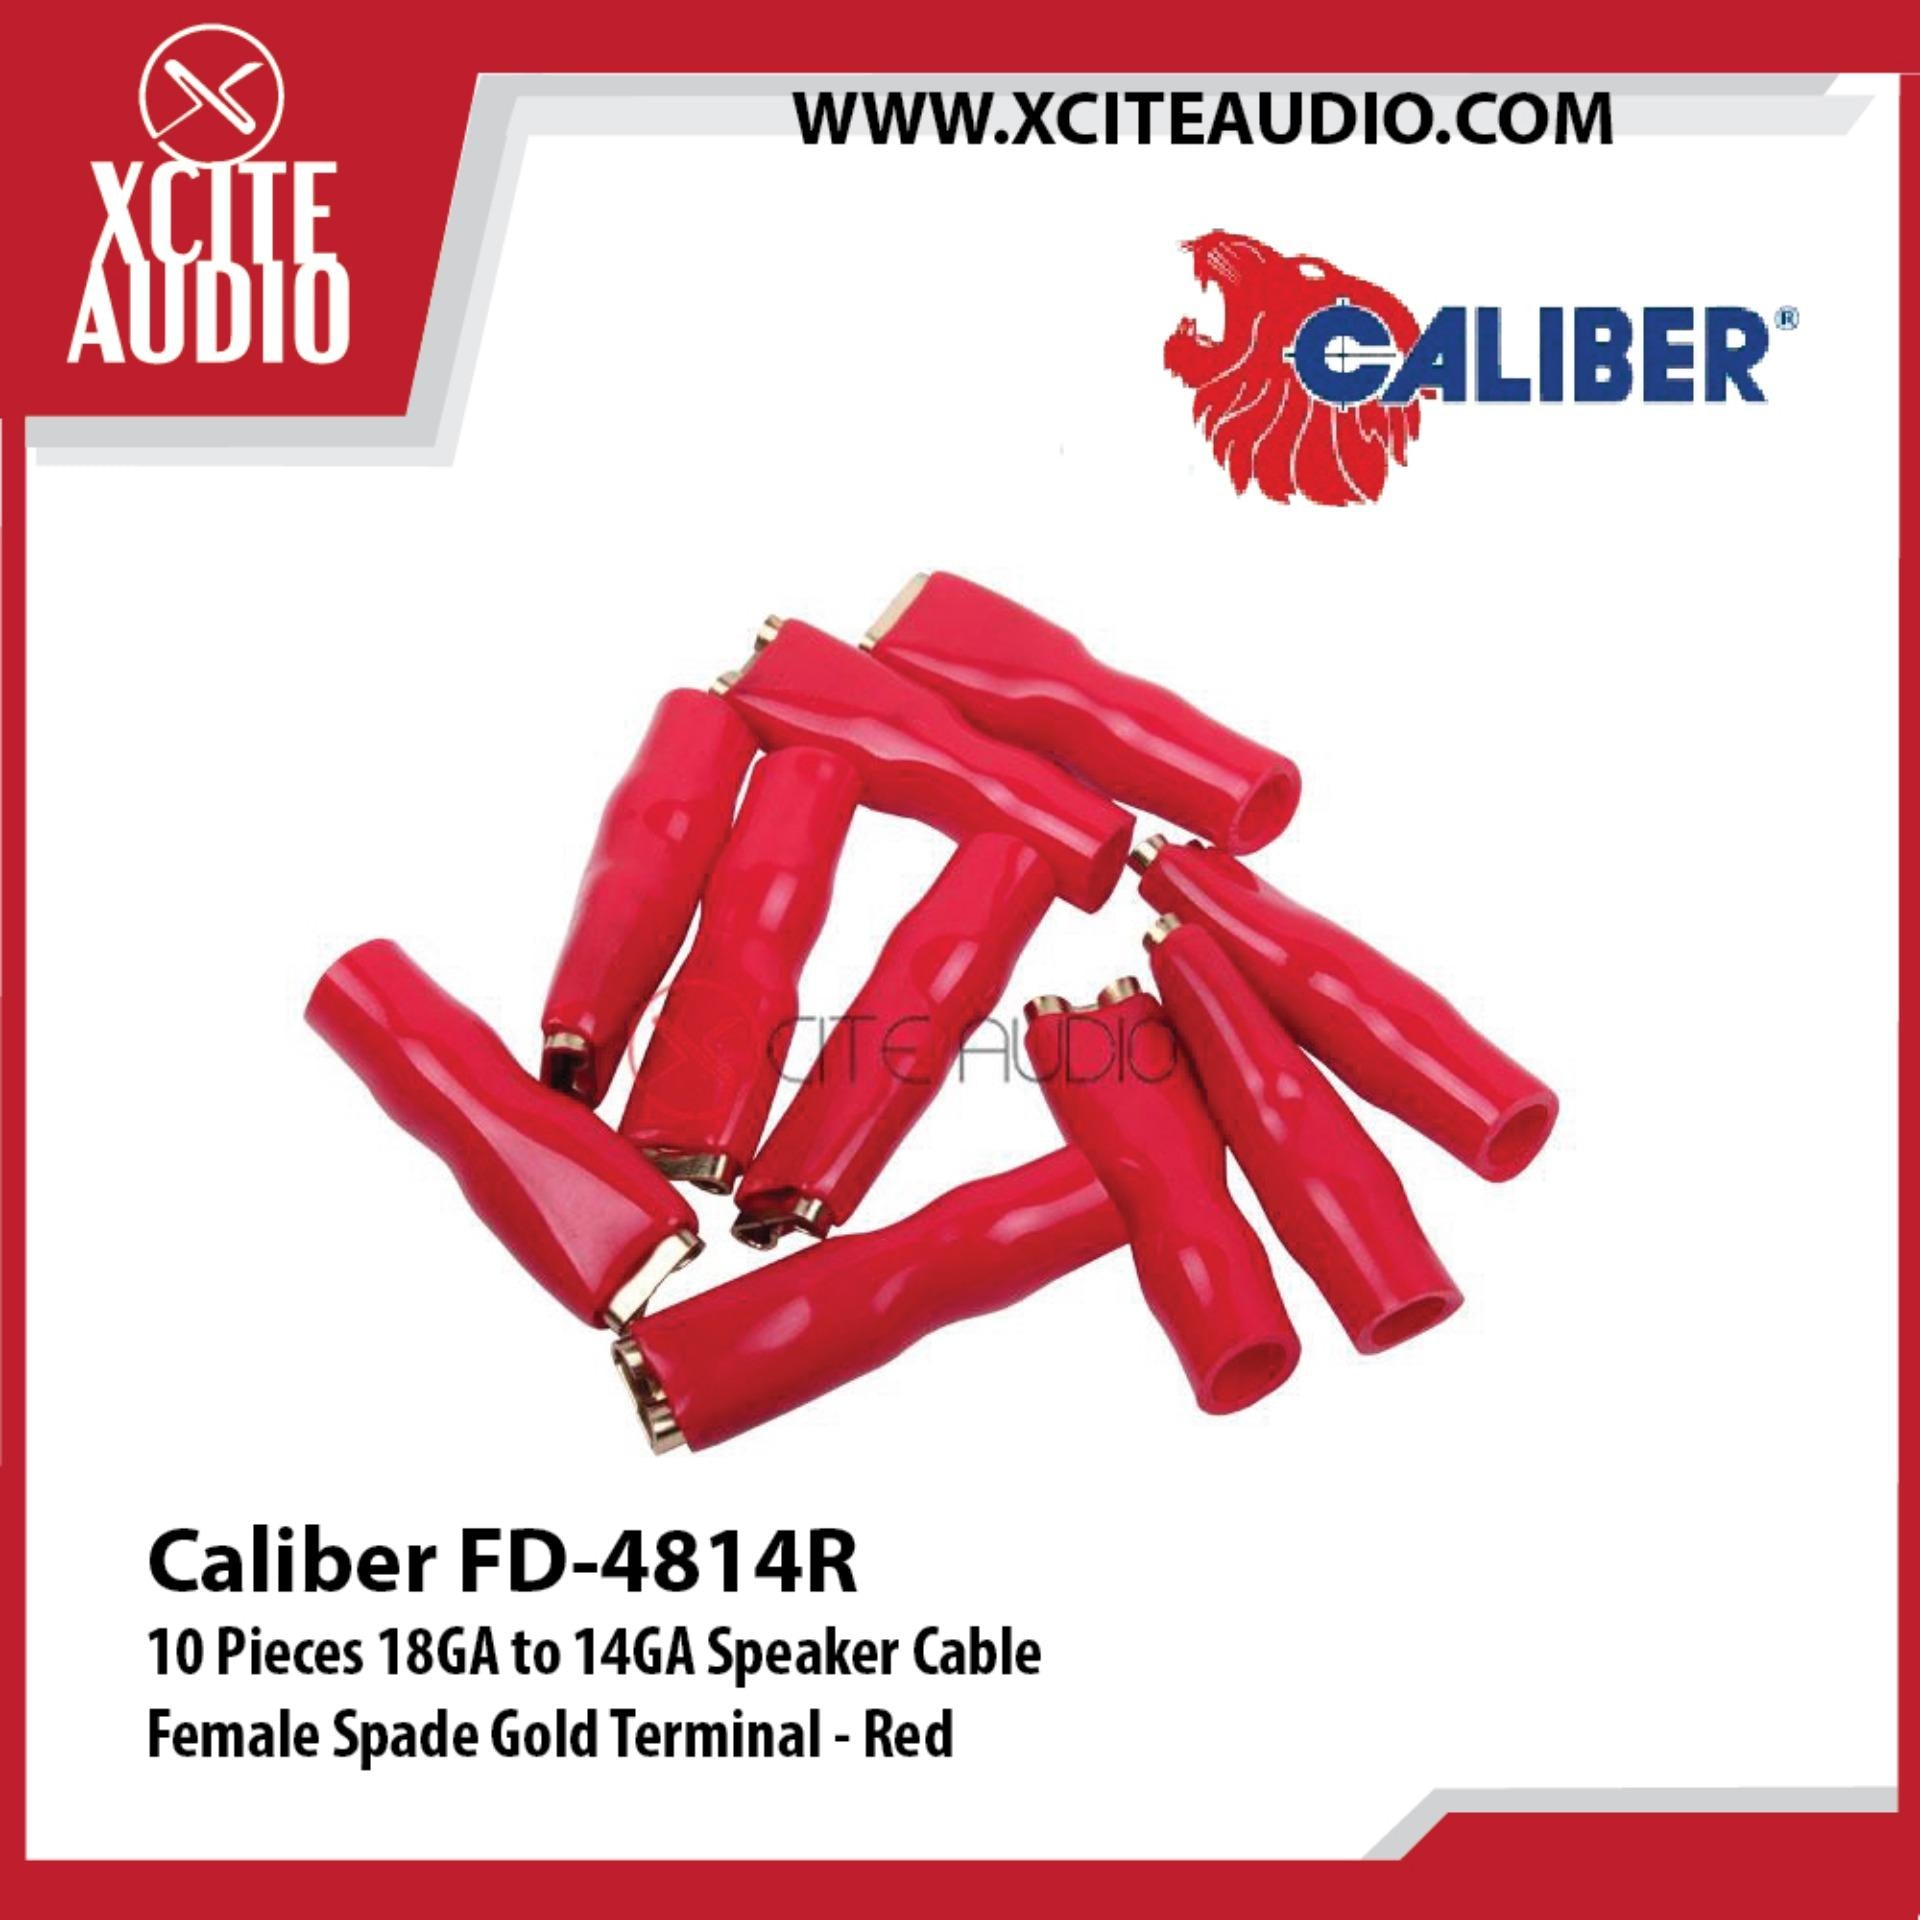 Caliber FD-4814R 10 Pieces 18GA to 14GA Speaker Cable Female Spade Gold Terminal - Red - Xcite Audio